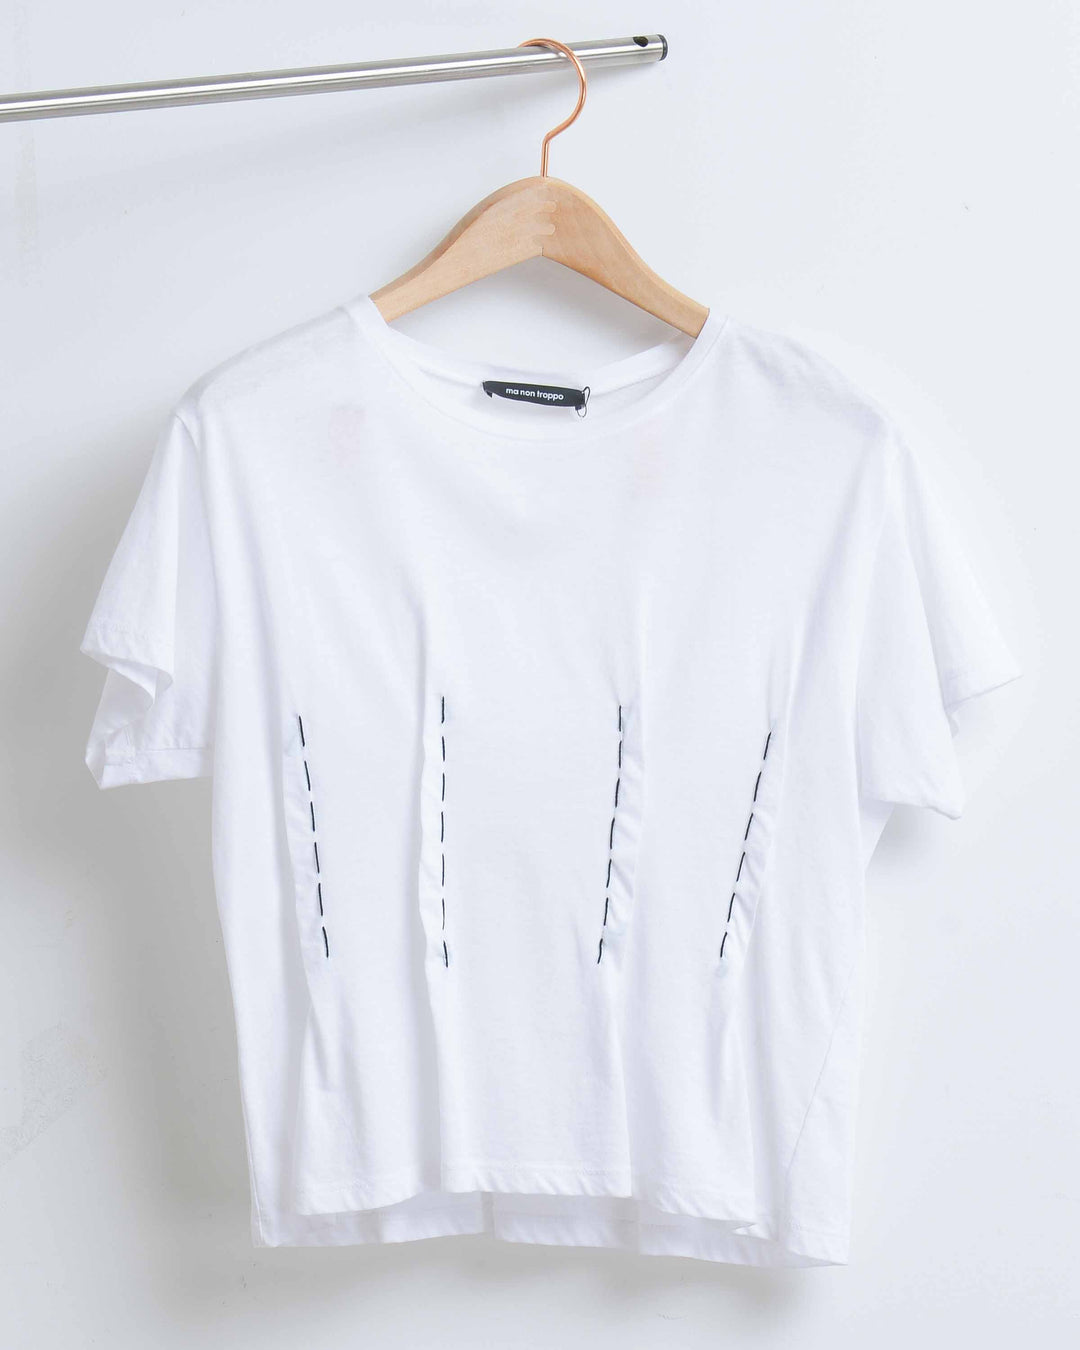 White Top with Black Dart Stitches